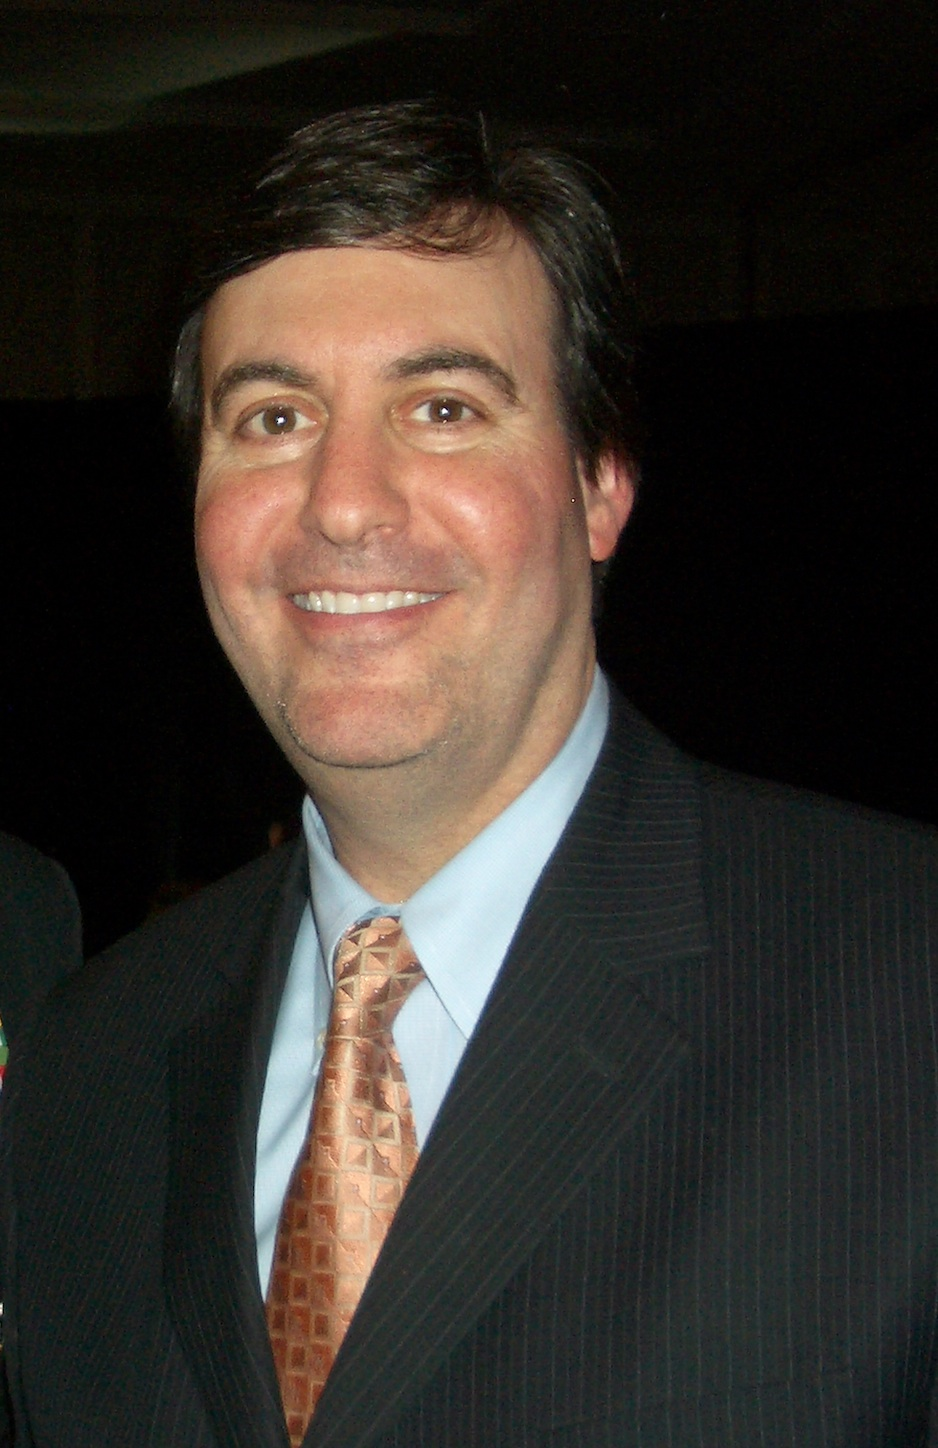 Click photo to download. Caption: Larry Greenfield, new director of JINSA. Credit: Courtesy of Larry Greenfield.